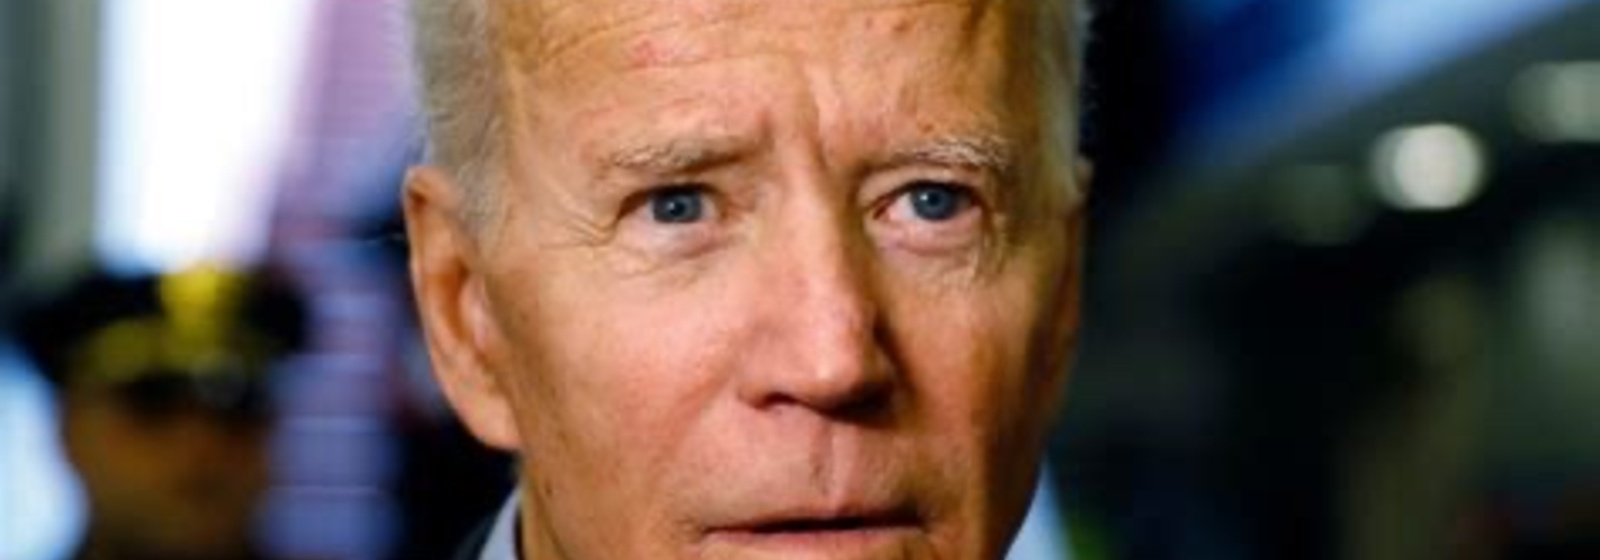 Biden Townhall: A Sea of False Claims